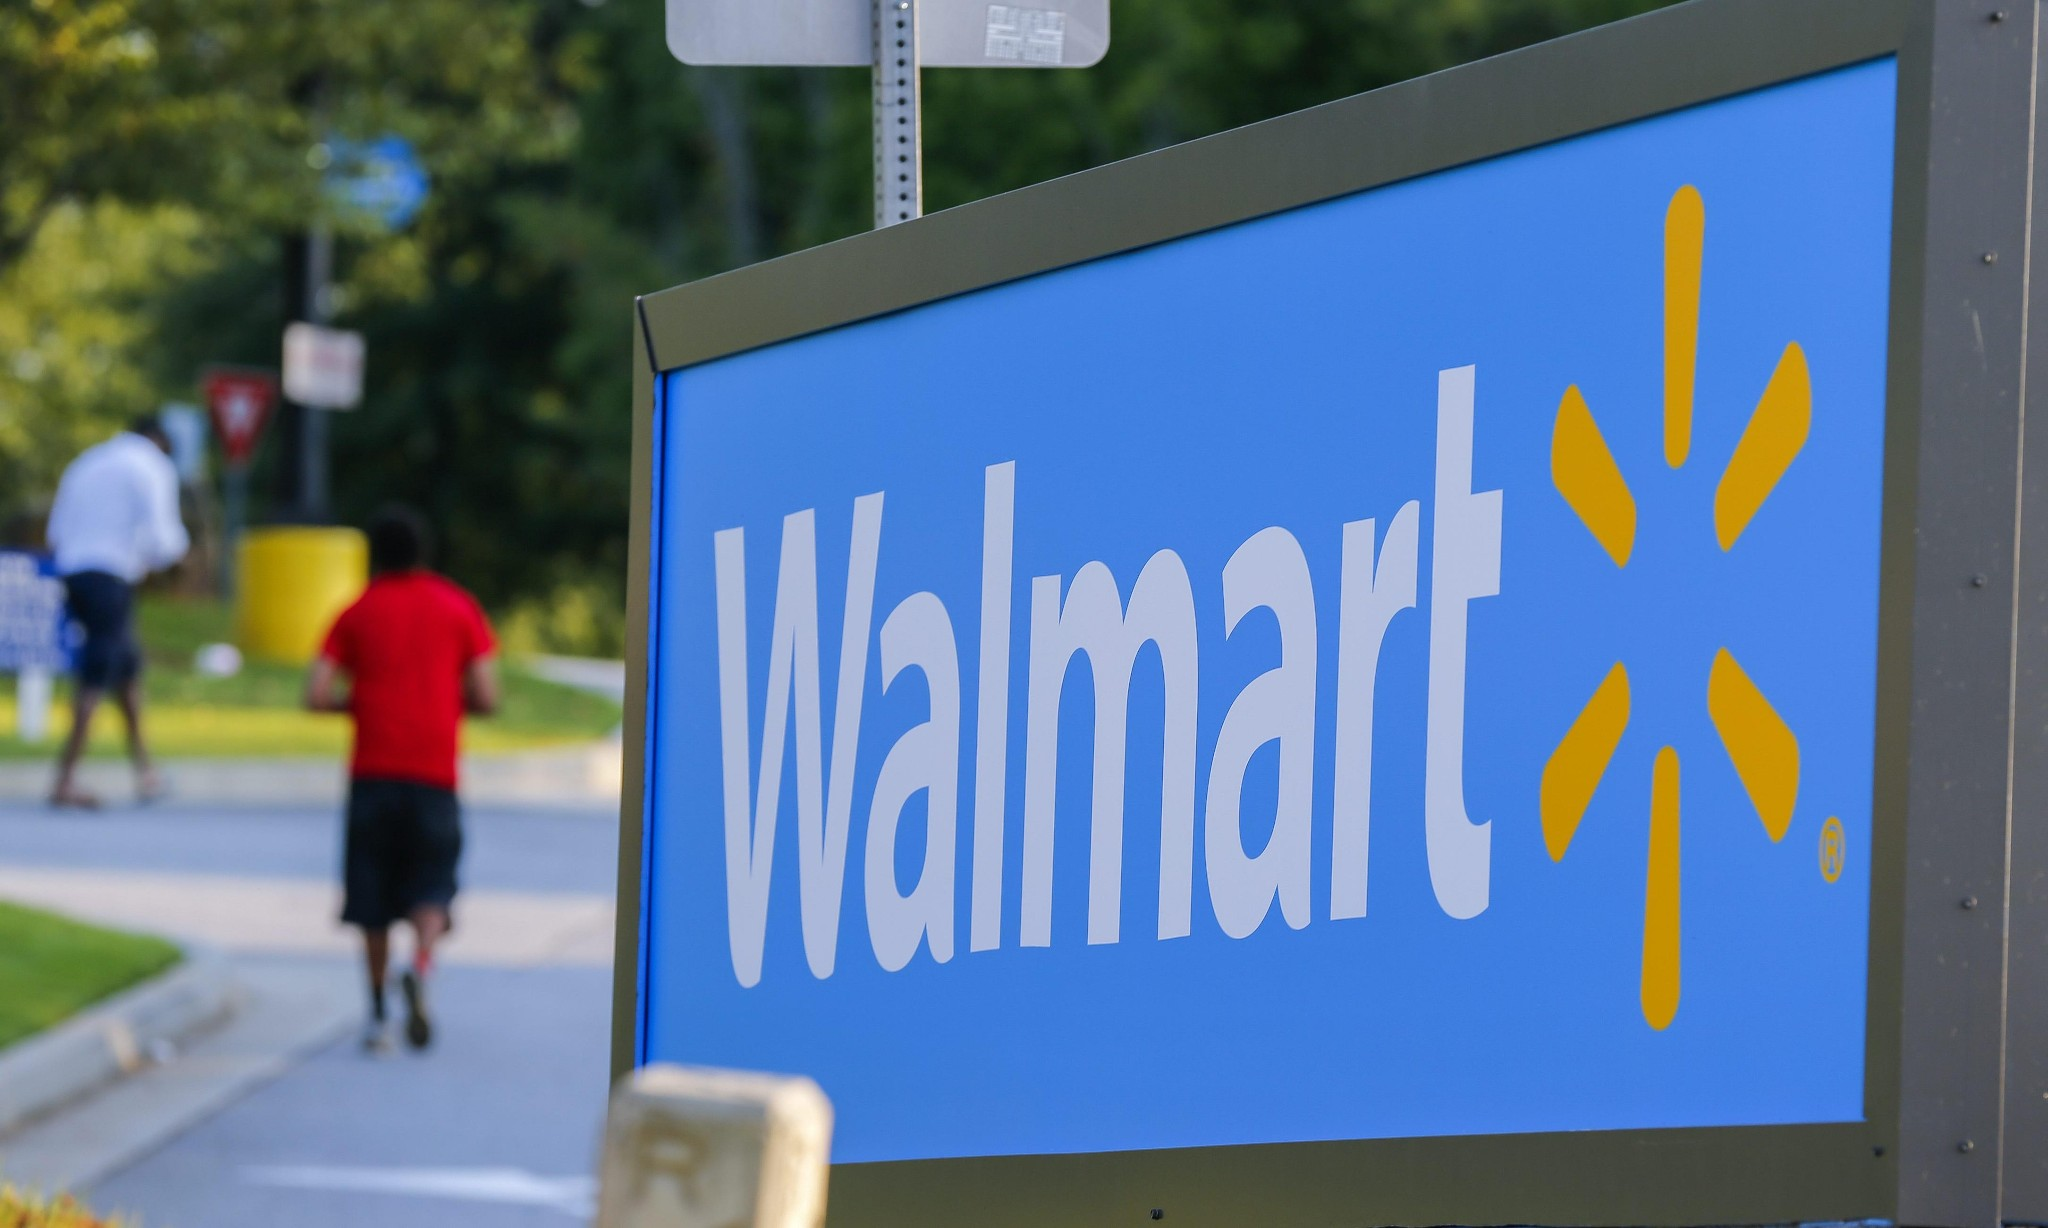 Walmart to shutter 269 stores, with most located in the US